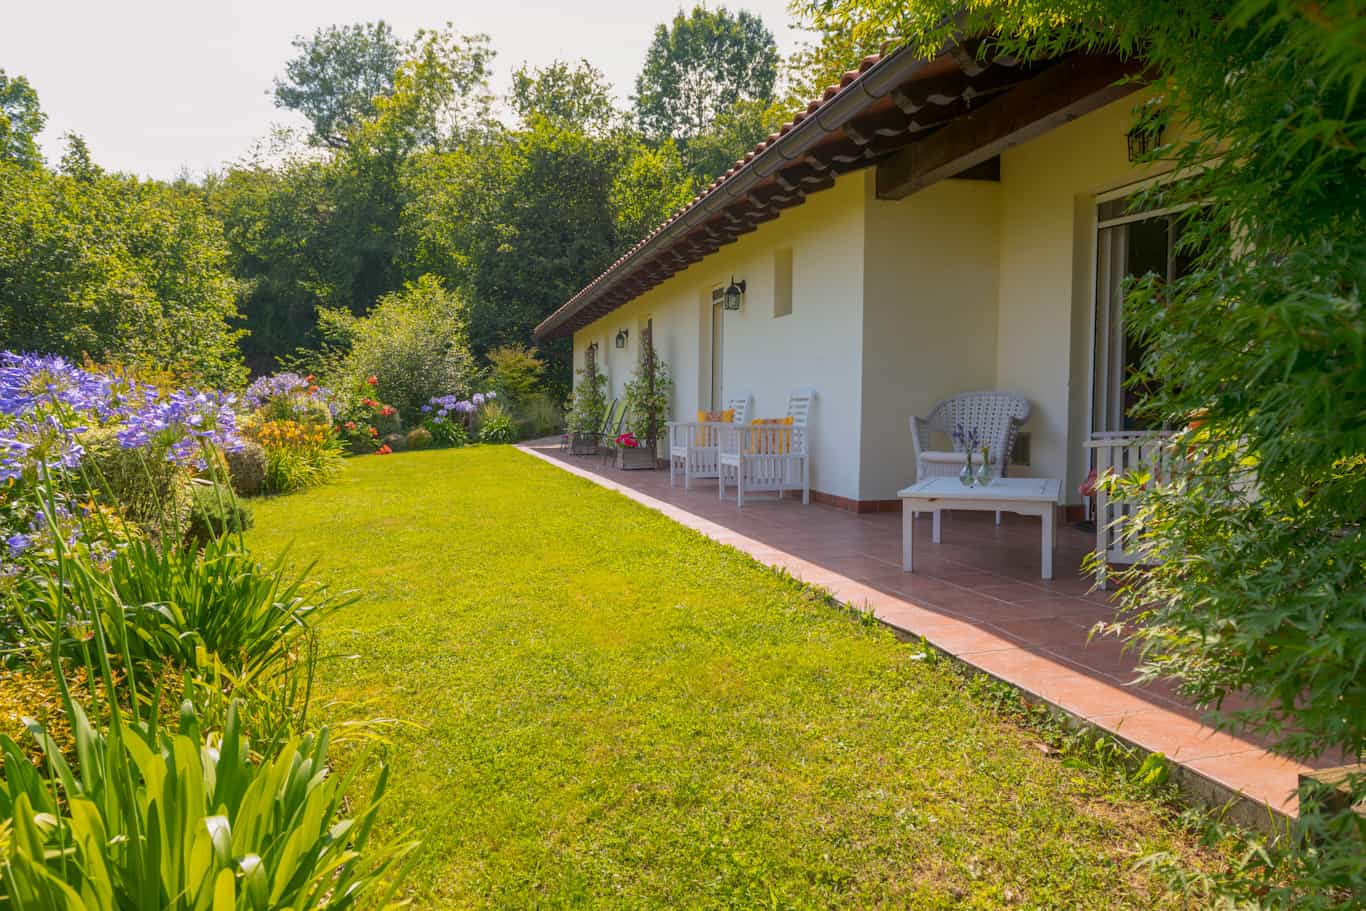 Guesthouse gardens in the Pyrenees